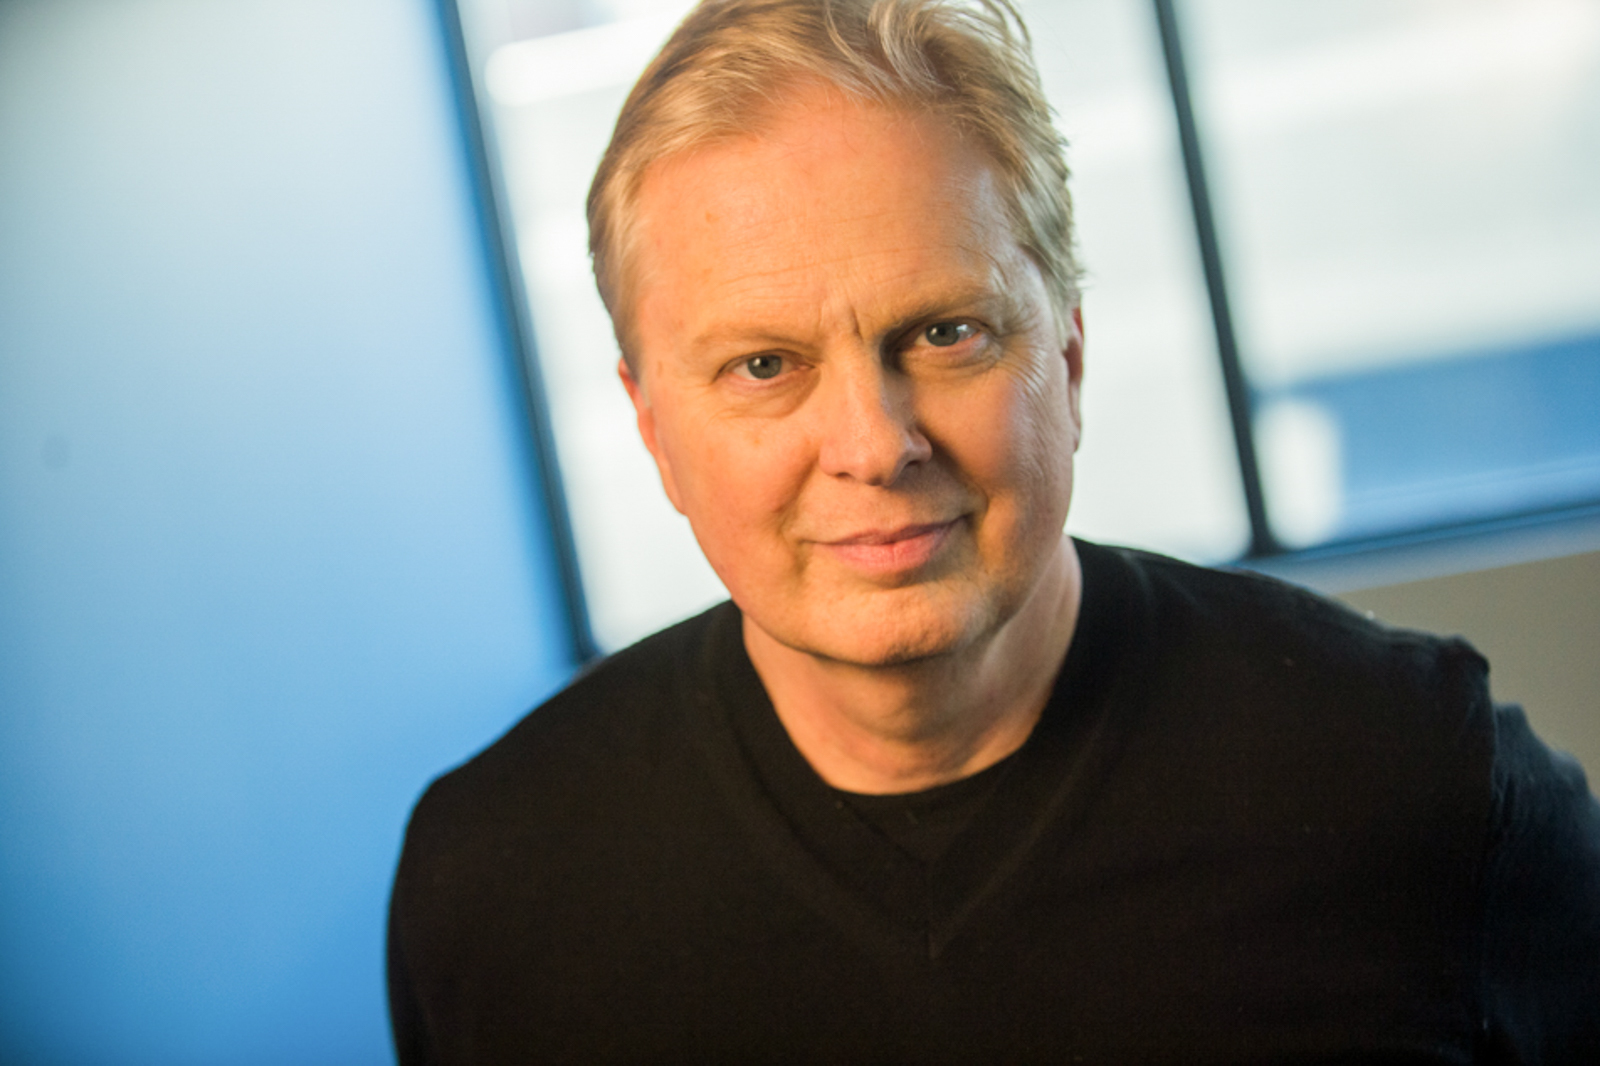 Portrait of journalist Tom Ashbrook with serious expression